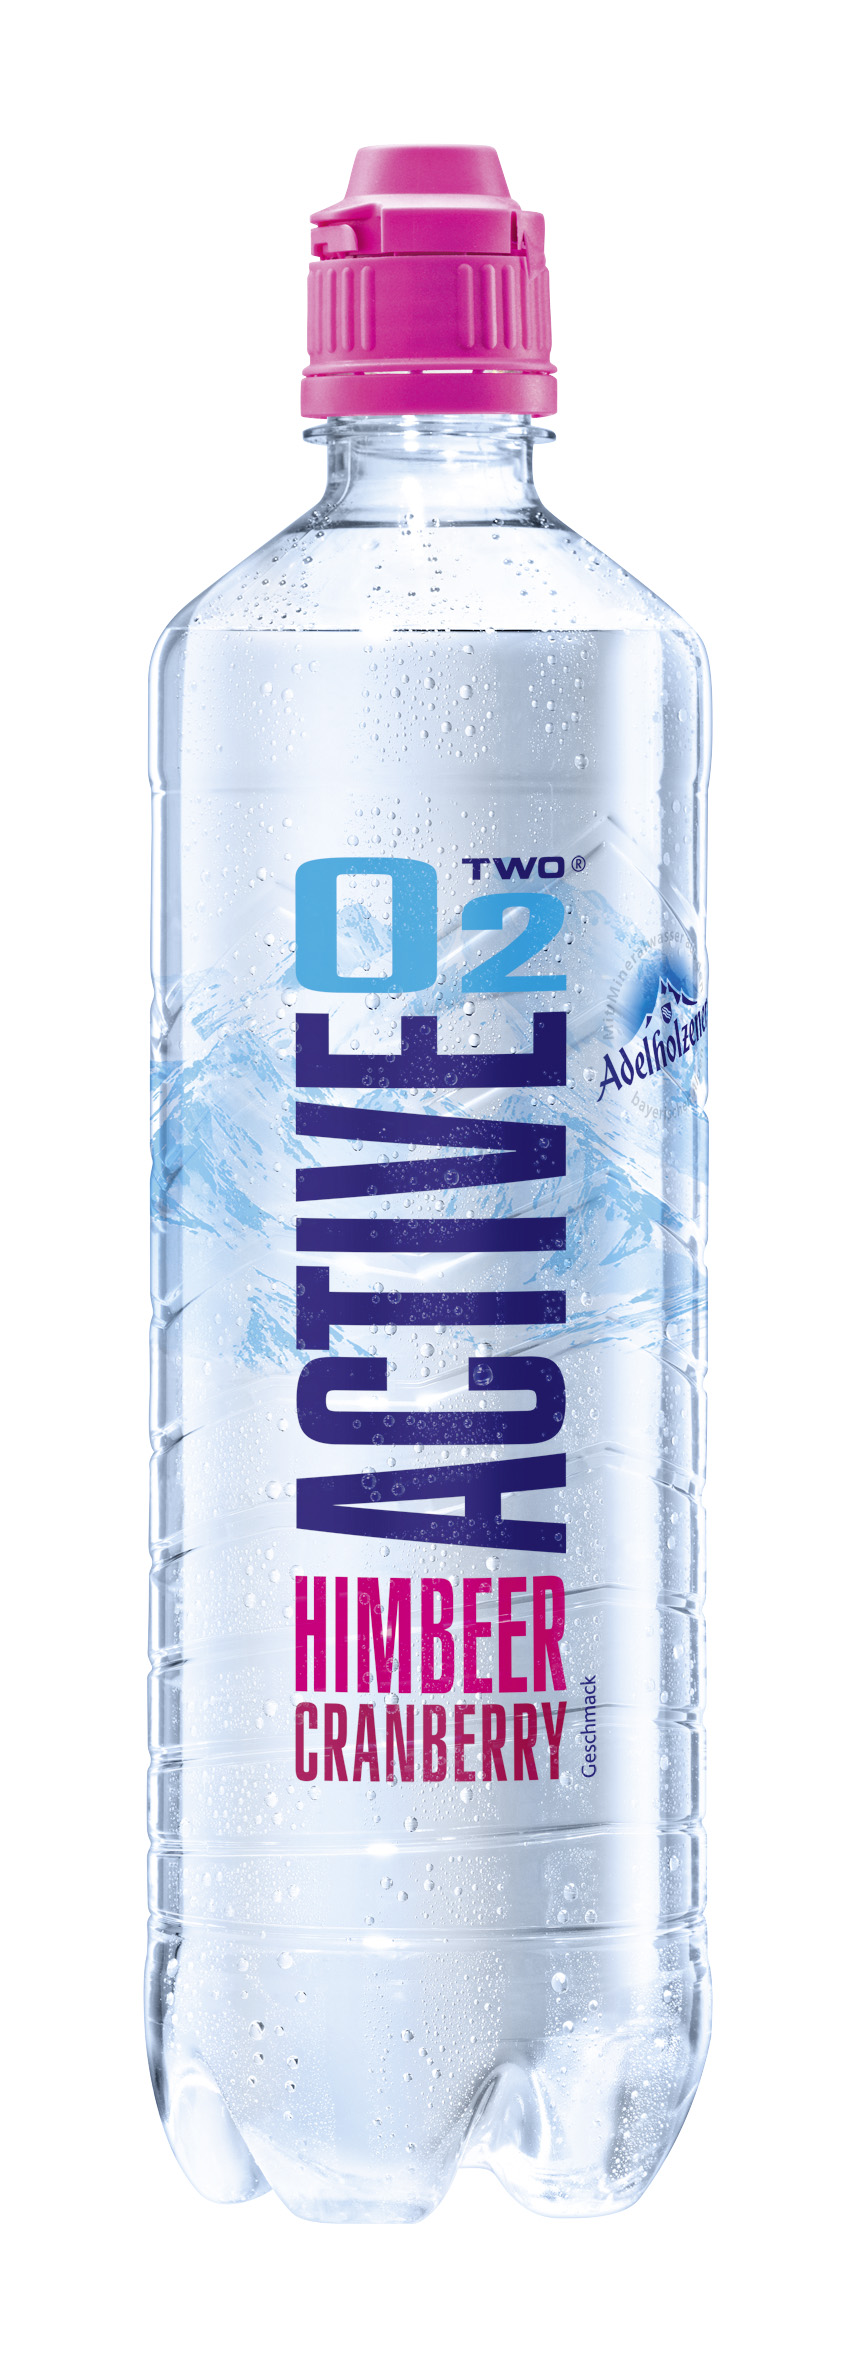 Active O2 Himbeer Cranberry